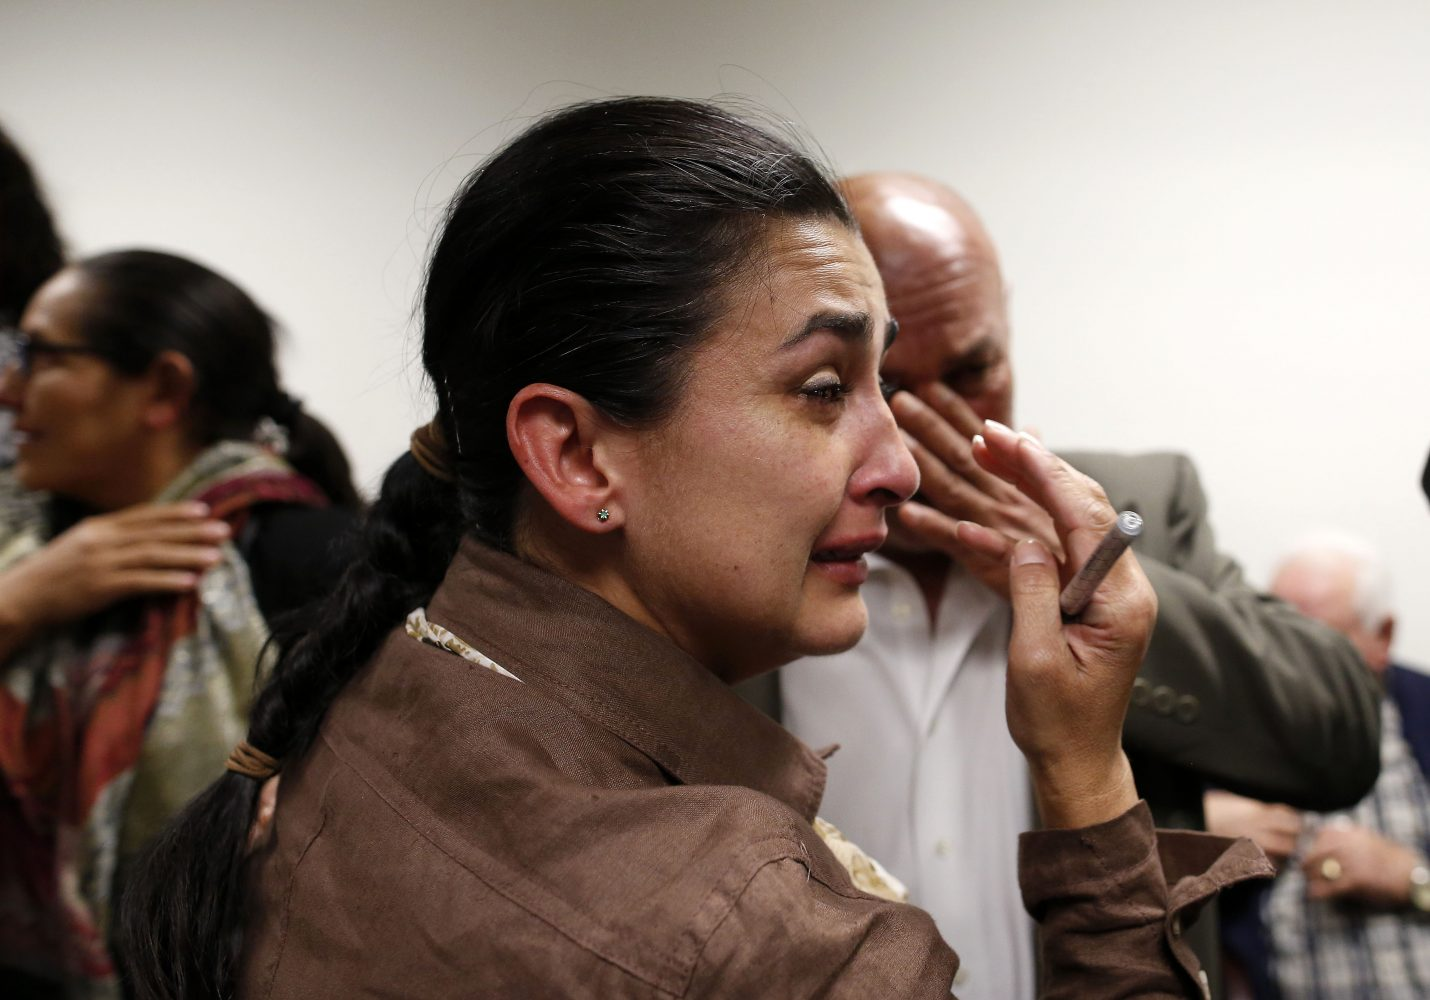 Claudia Aguilar, the mother of slain University of Florida student Christian Aguilar, cries with family in the family's private room at the Alachua County Criminal Justice Center following the guilty verdict of Pedro Bravo Friday, August 15, 2014.  Bravo was found guilty of first degree murder. (Doug Finger/The Gainesville Sun/Pool)